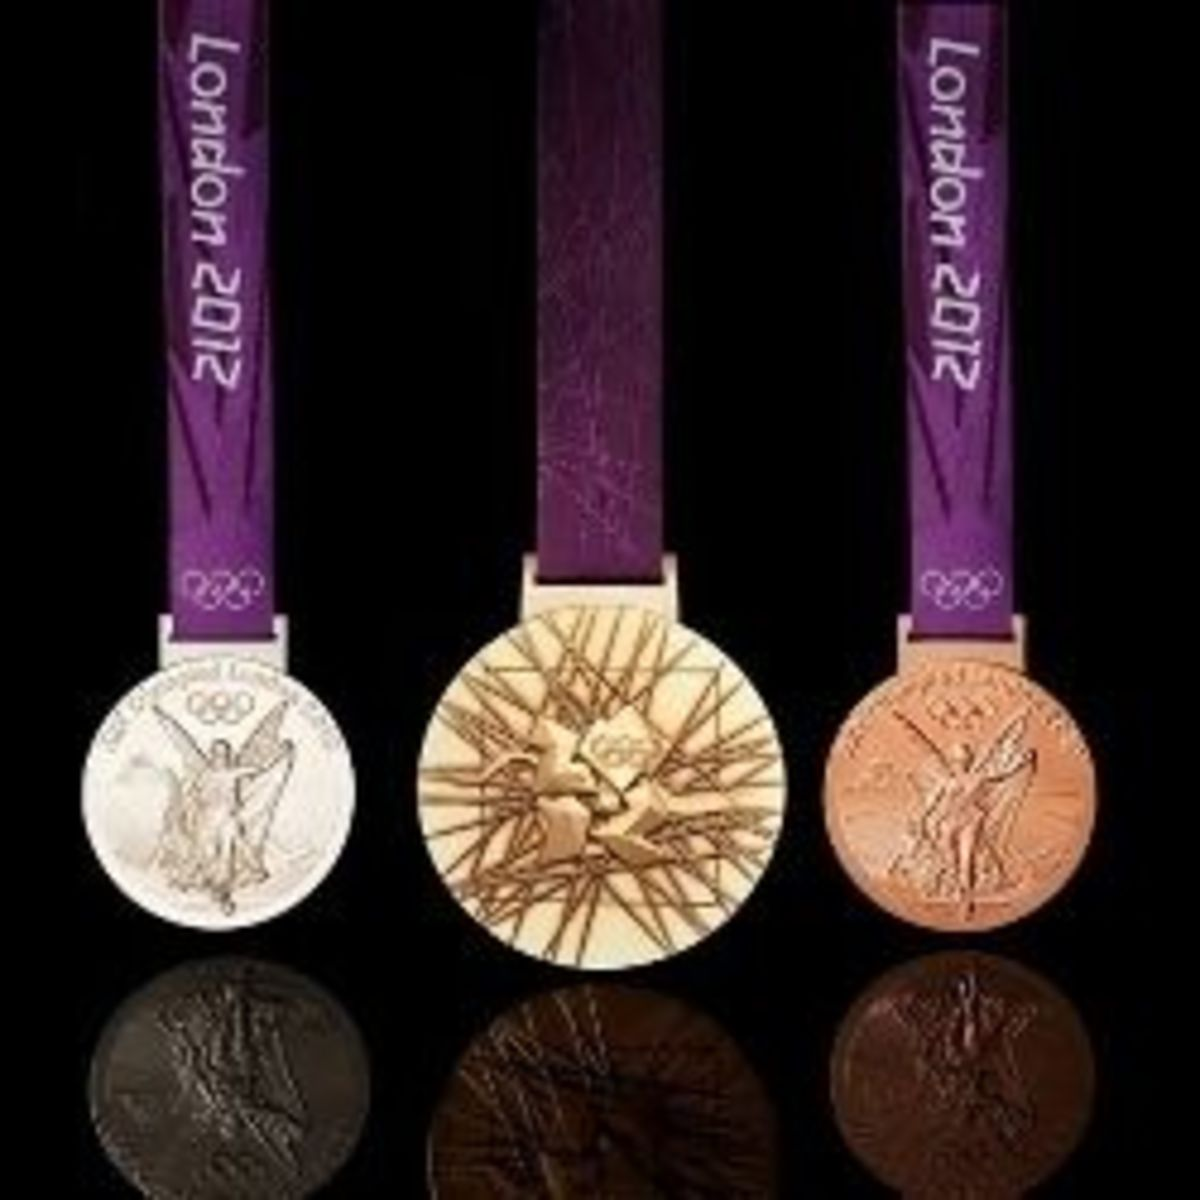 London 2012 Olympics Medals and Tables